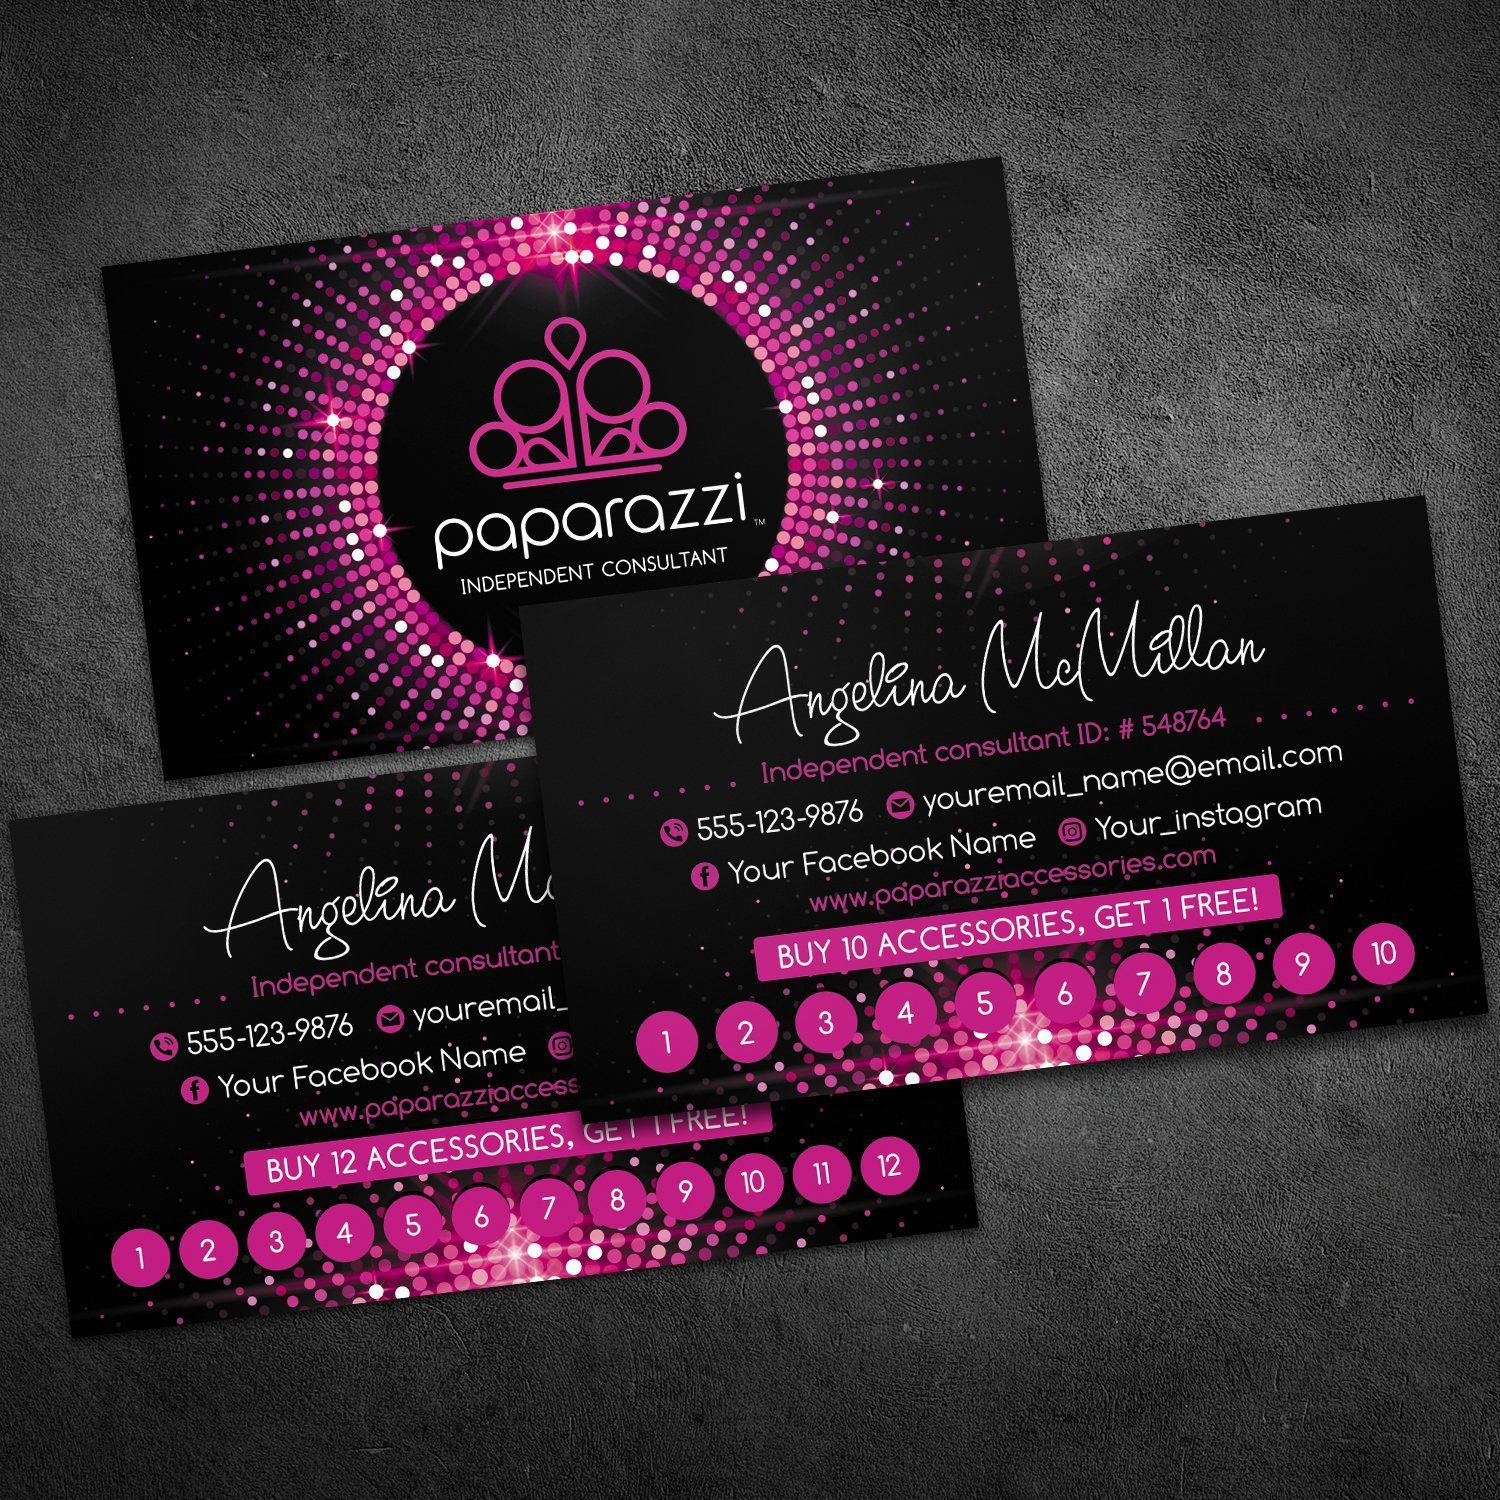 Paparazzi Business Cards Pink Paparazzi Business Cards Template